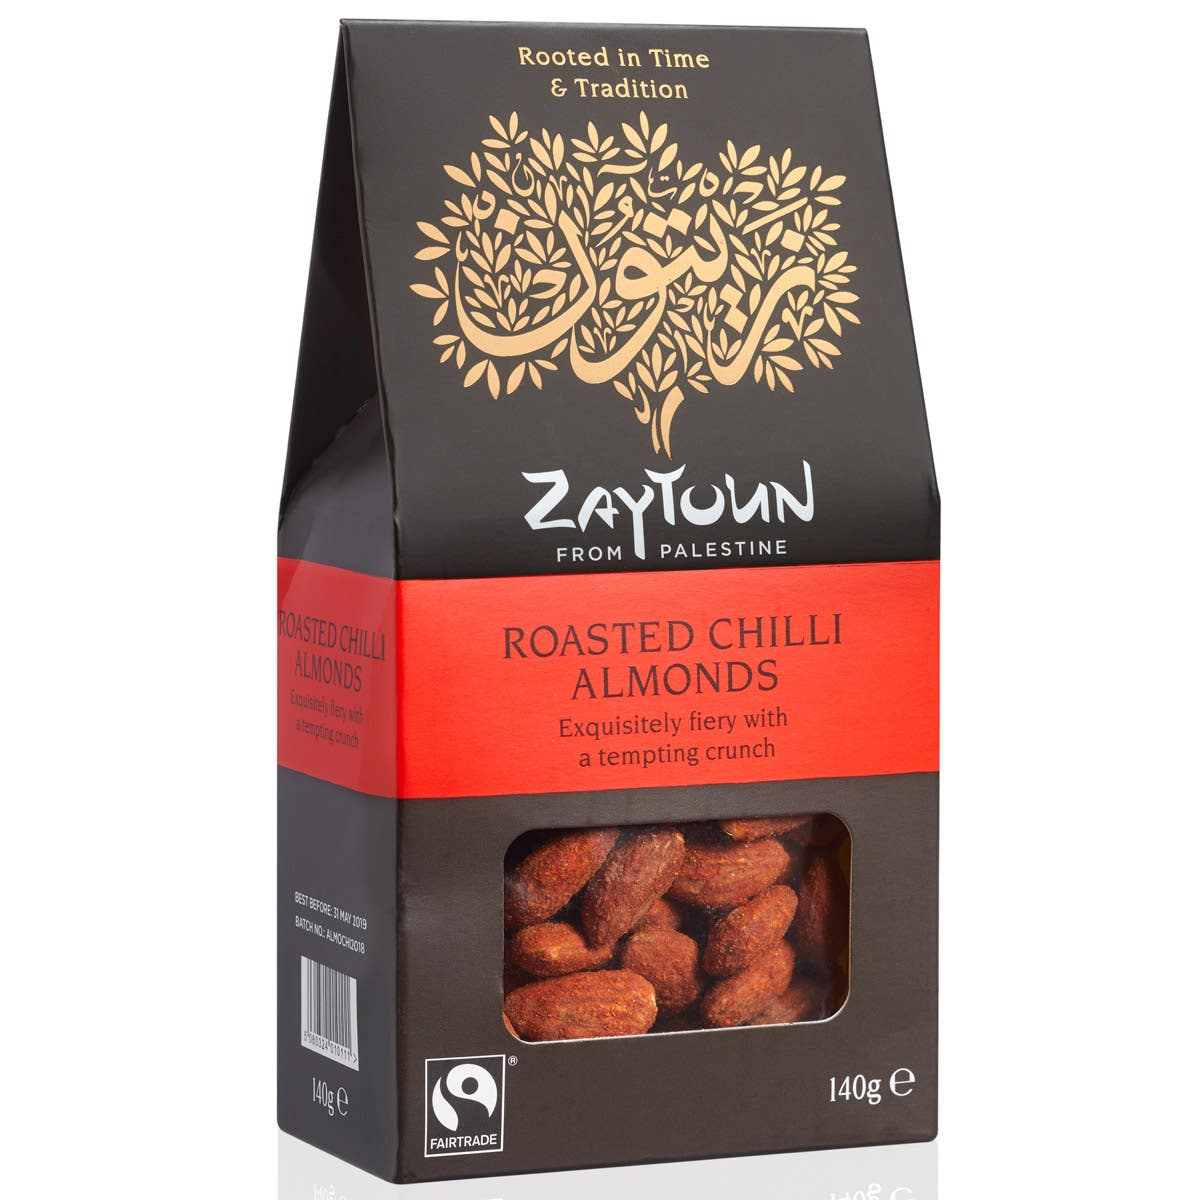 Zaytoun Roasted Chilli Almonds (6x140g) CASE